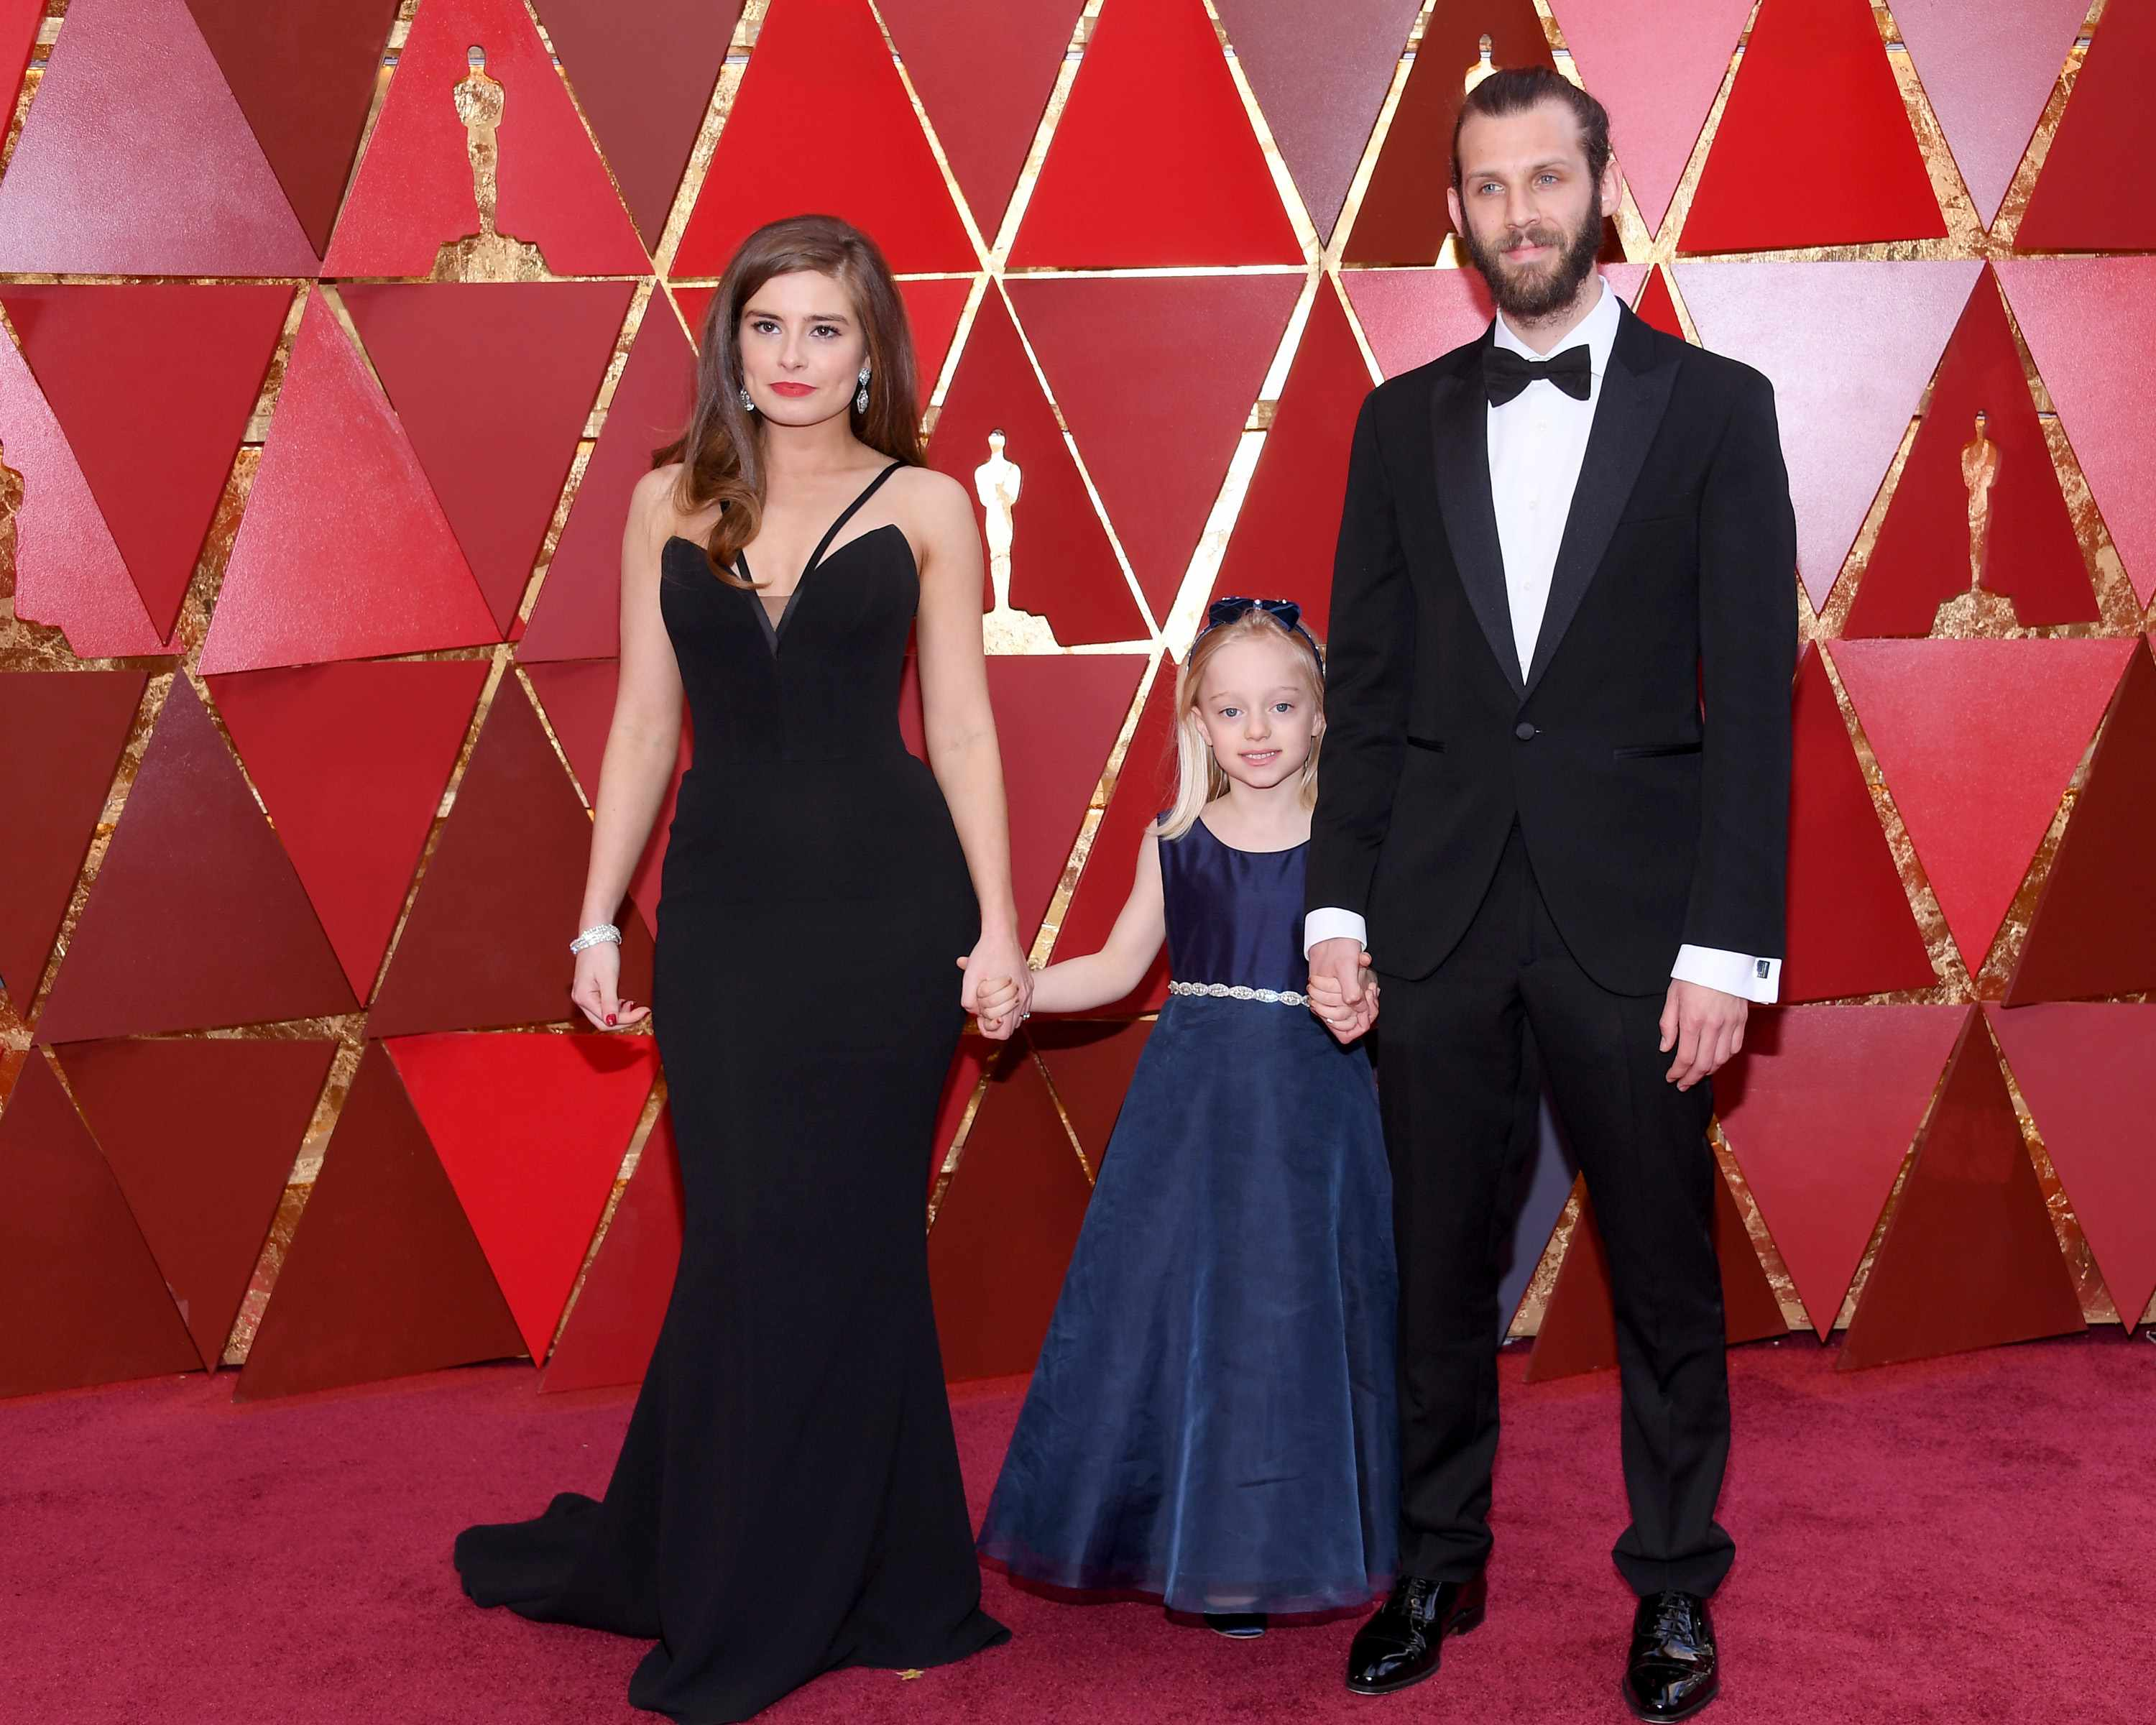 The Silent Child's Rachel Shenton, Maisie Sly, and Chris Overton at the Oscars